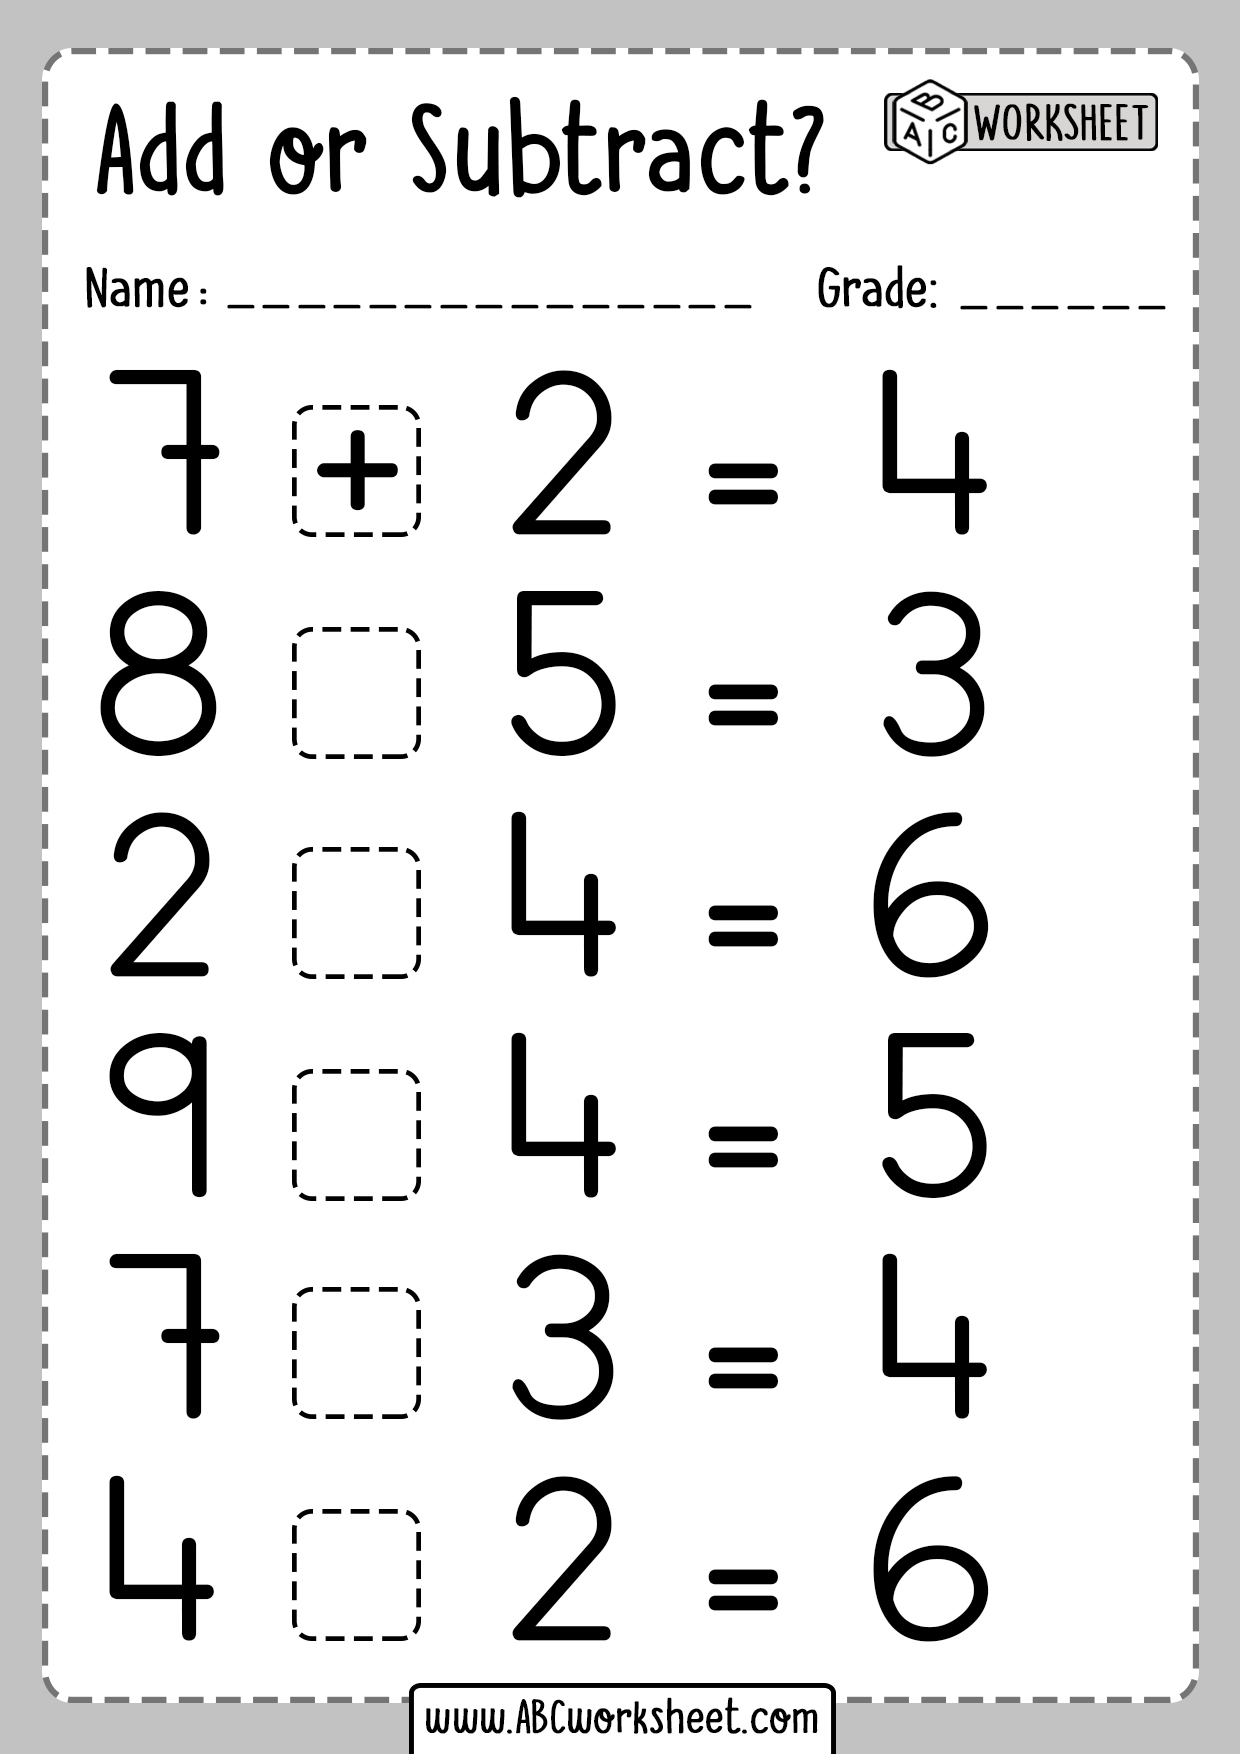 Adding Or Subtracting Math Worksheets